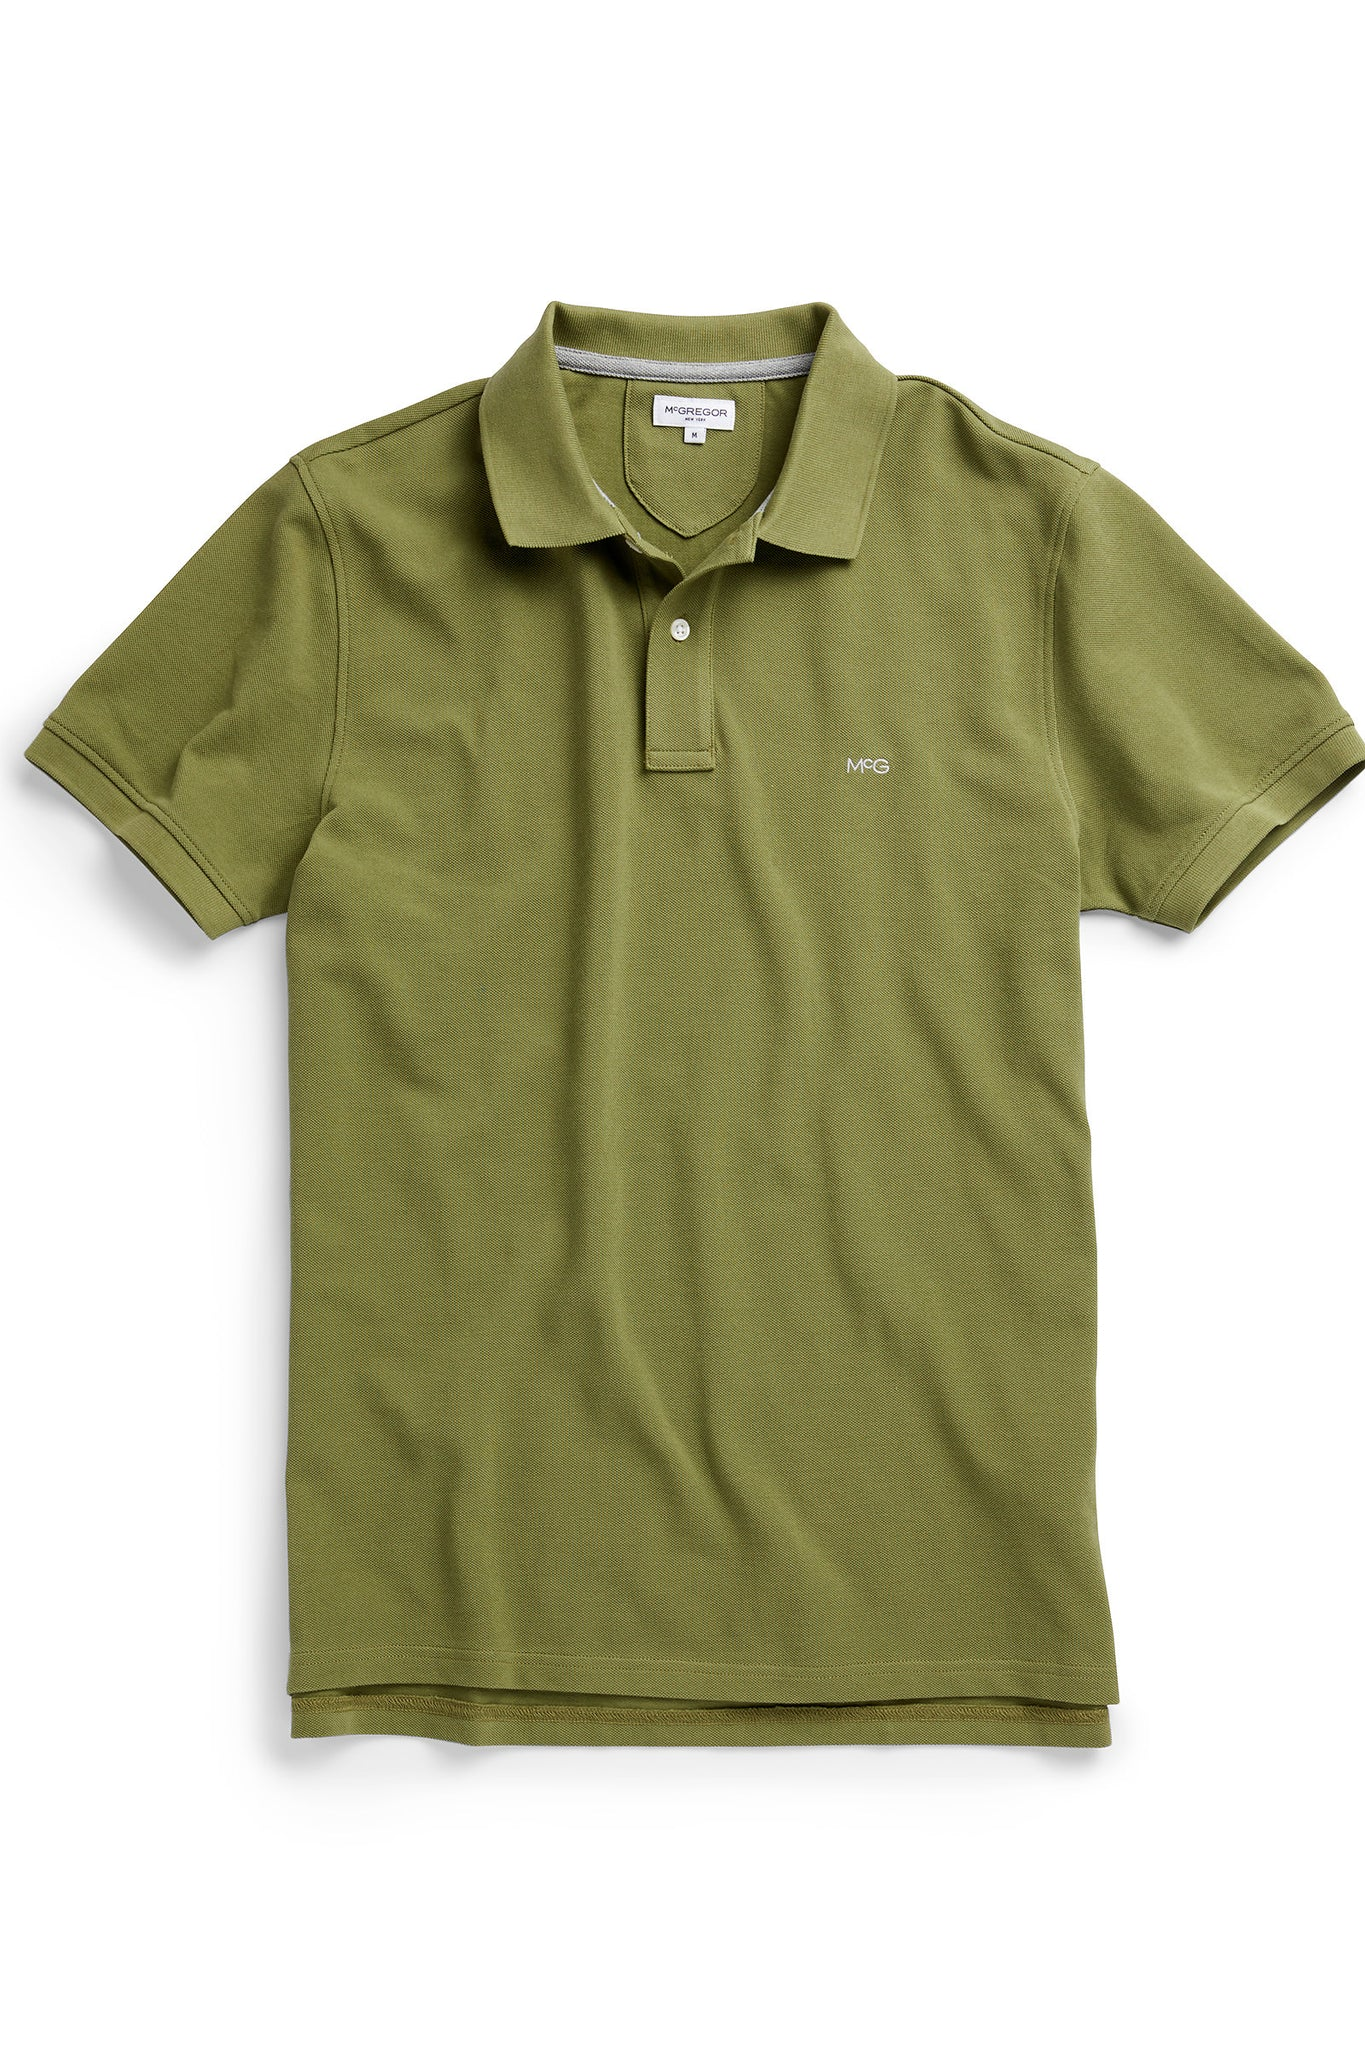 McG Regular fit cotton pique polo